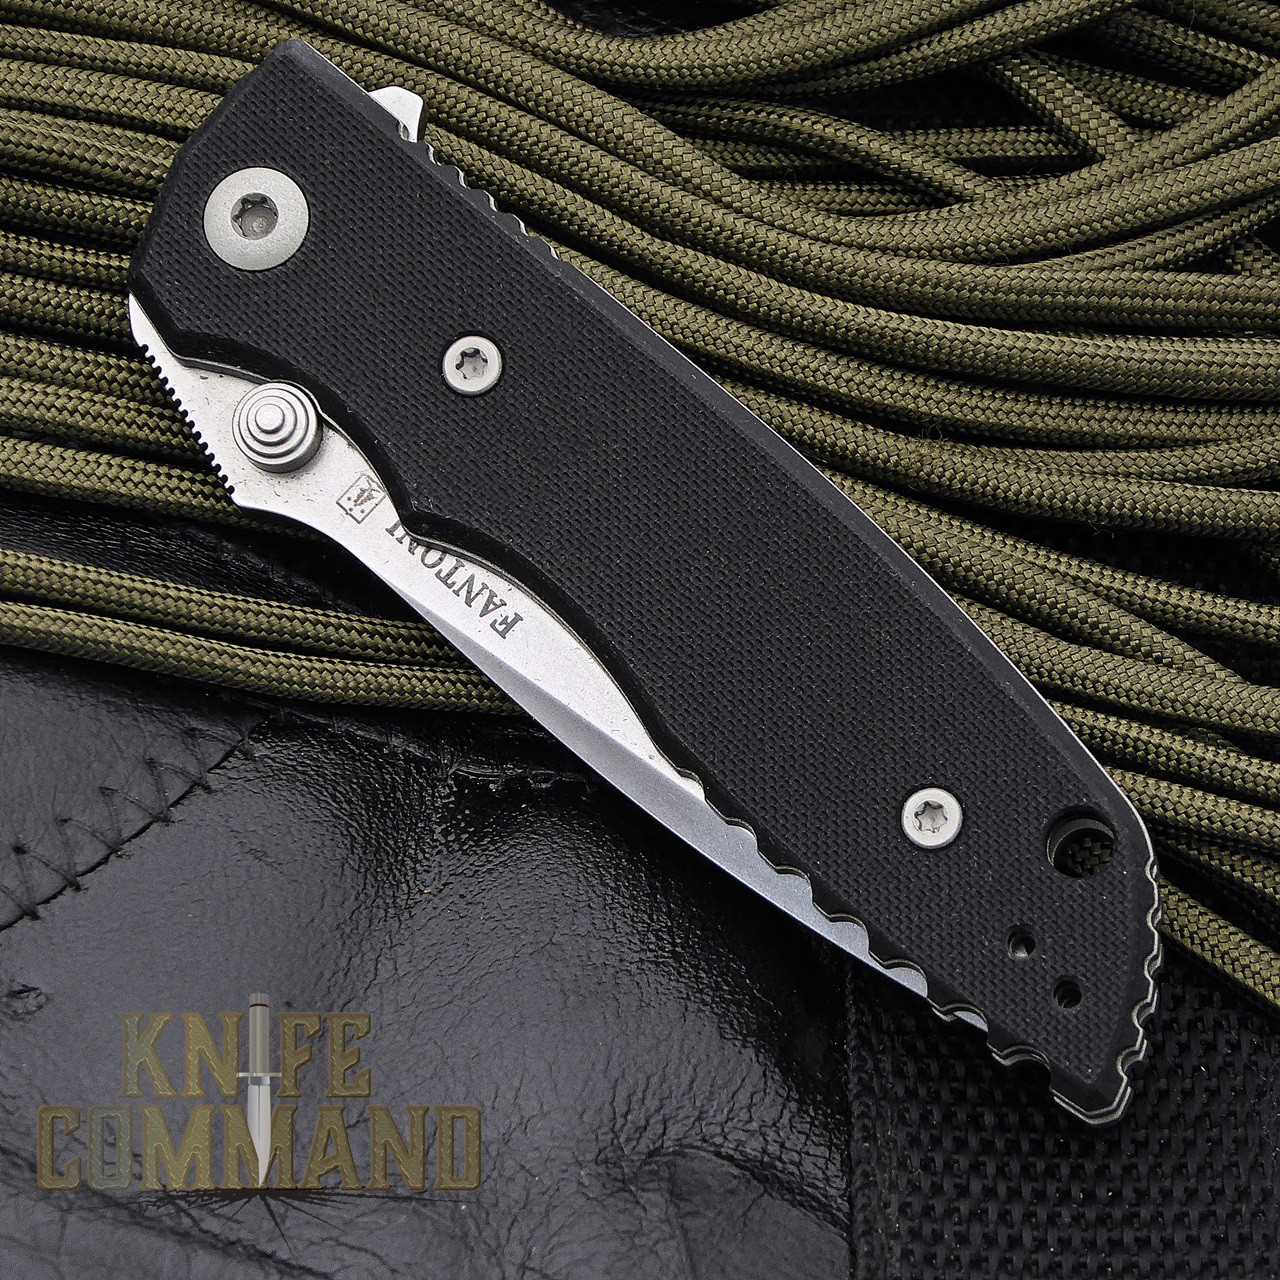 Fantoni HB 02 Black William Harsey Combat Folder Tactical Knife.  Pocket sized.